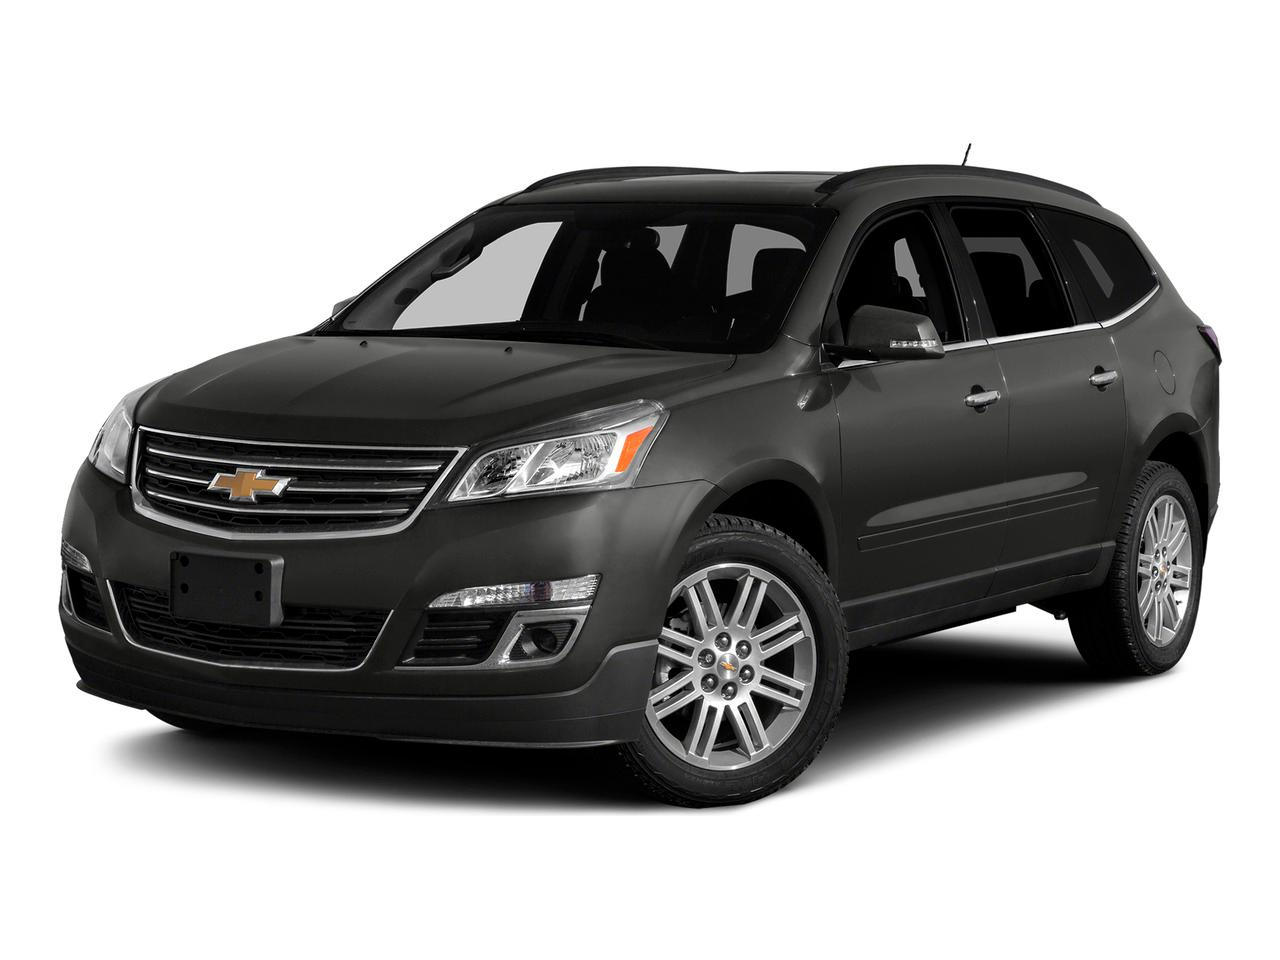 2015 Chevrolet Traverse Vehicle Photo in Killeen, TX 76541